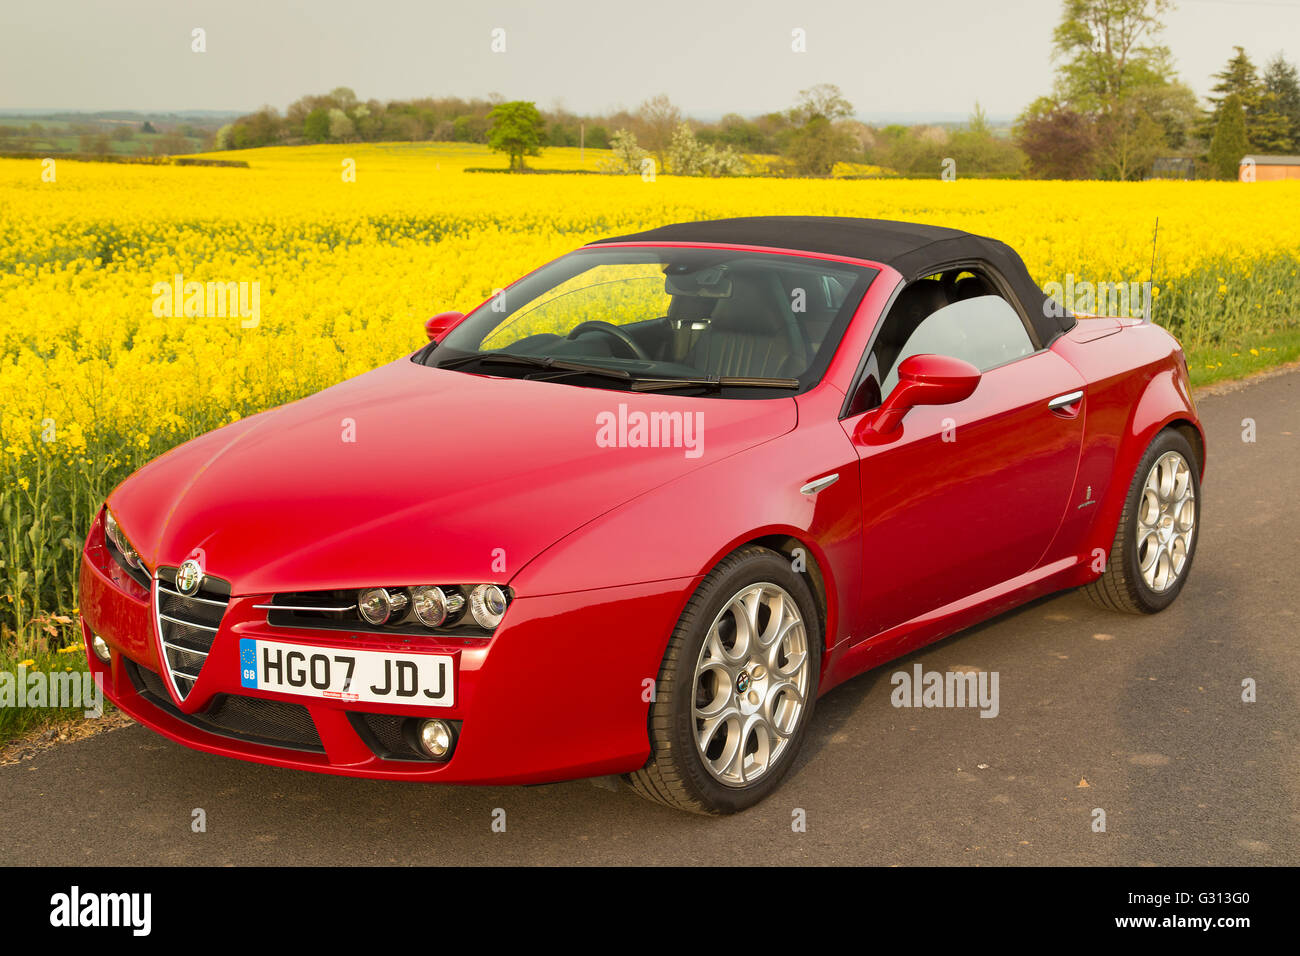 Alfa Romeo Spider Soft Top Convertible Sports Car In Red With Black Hood